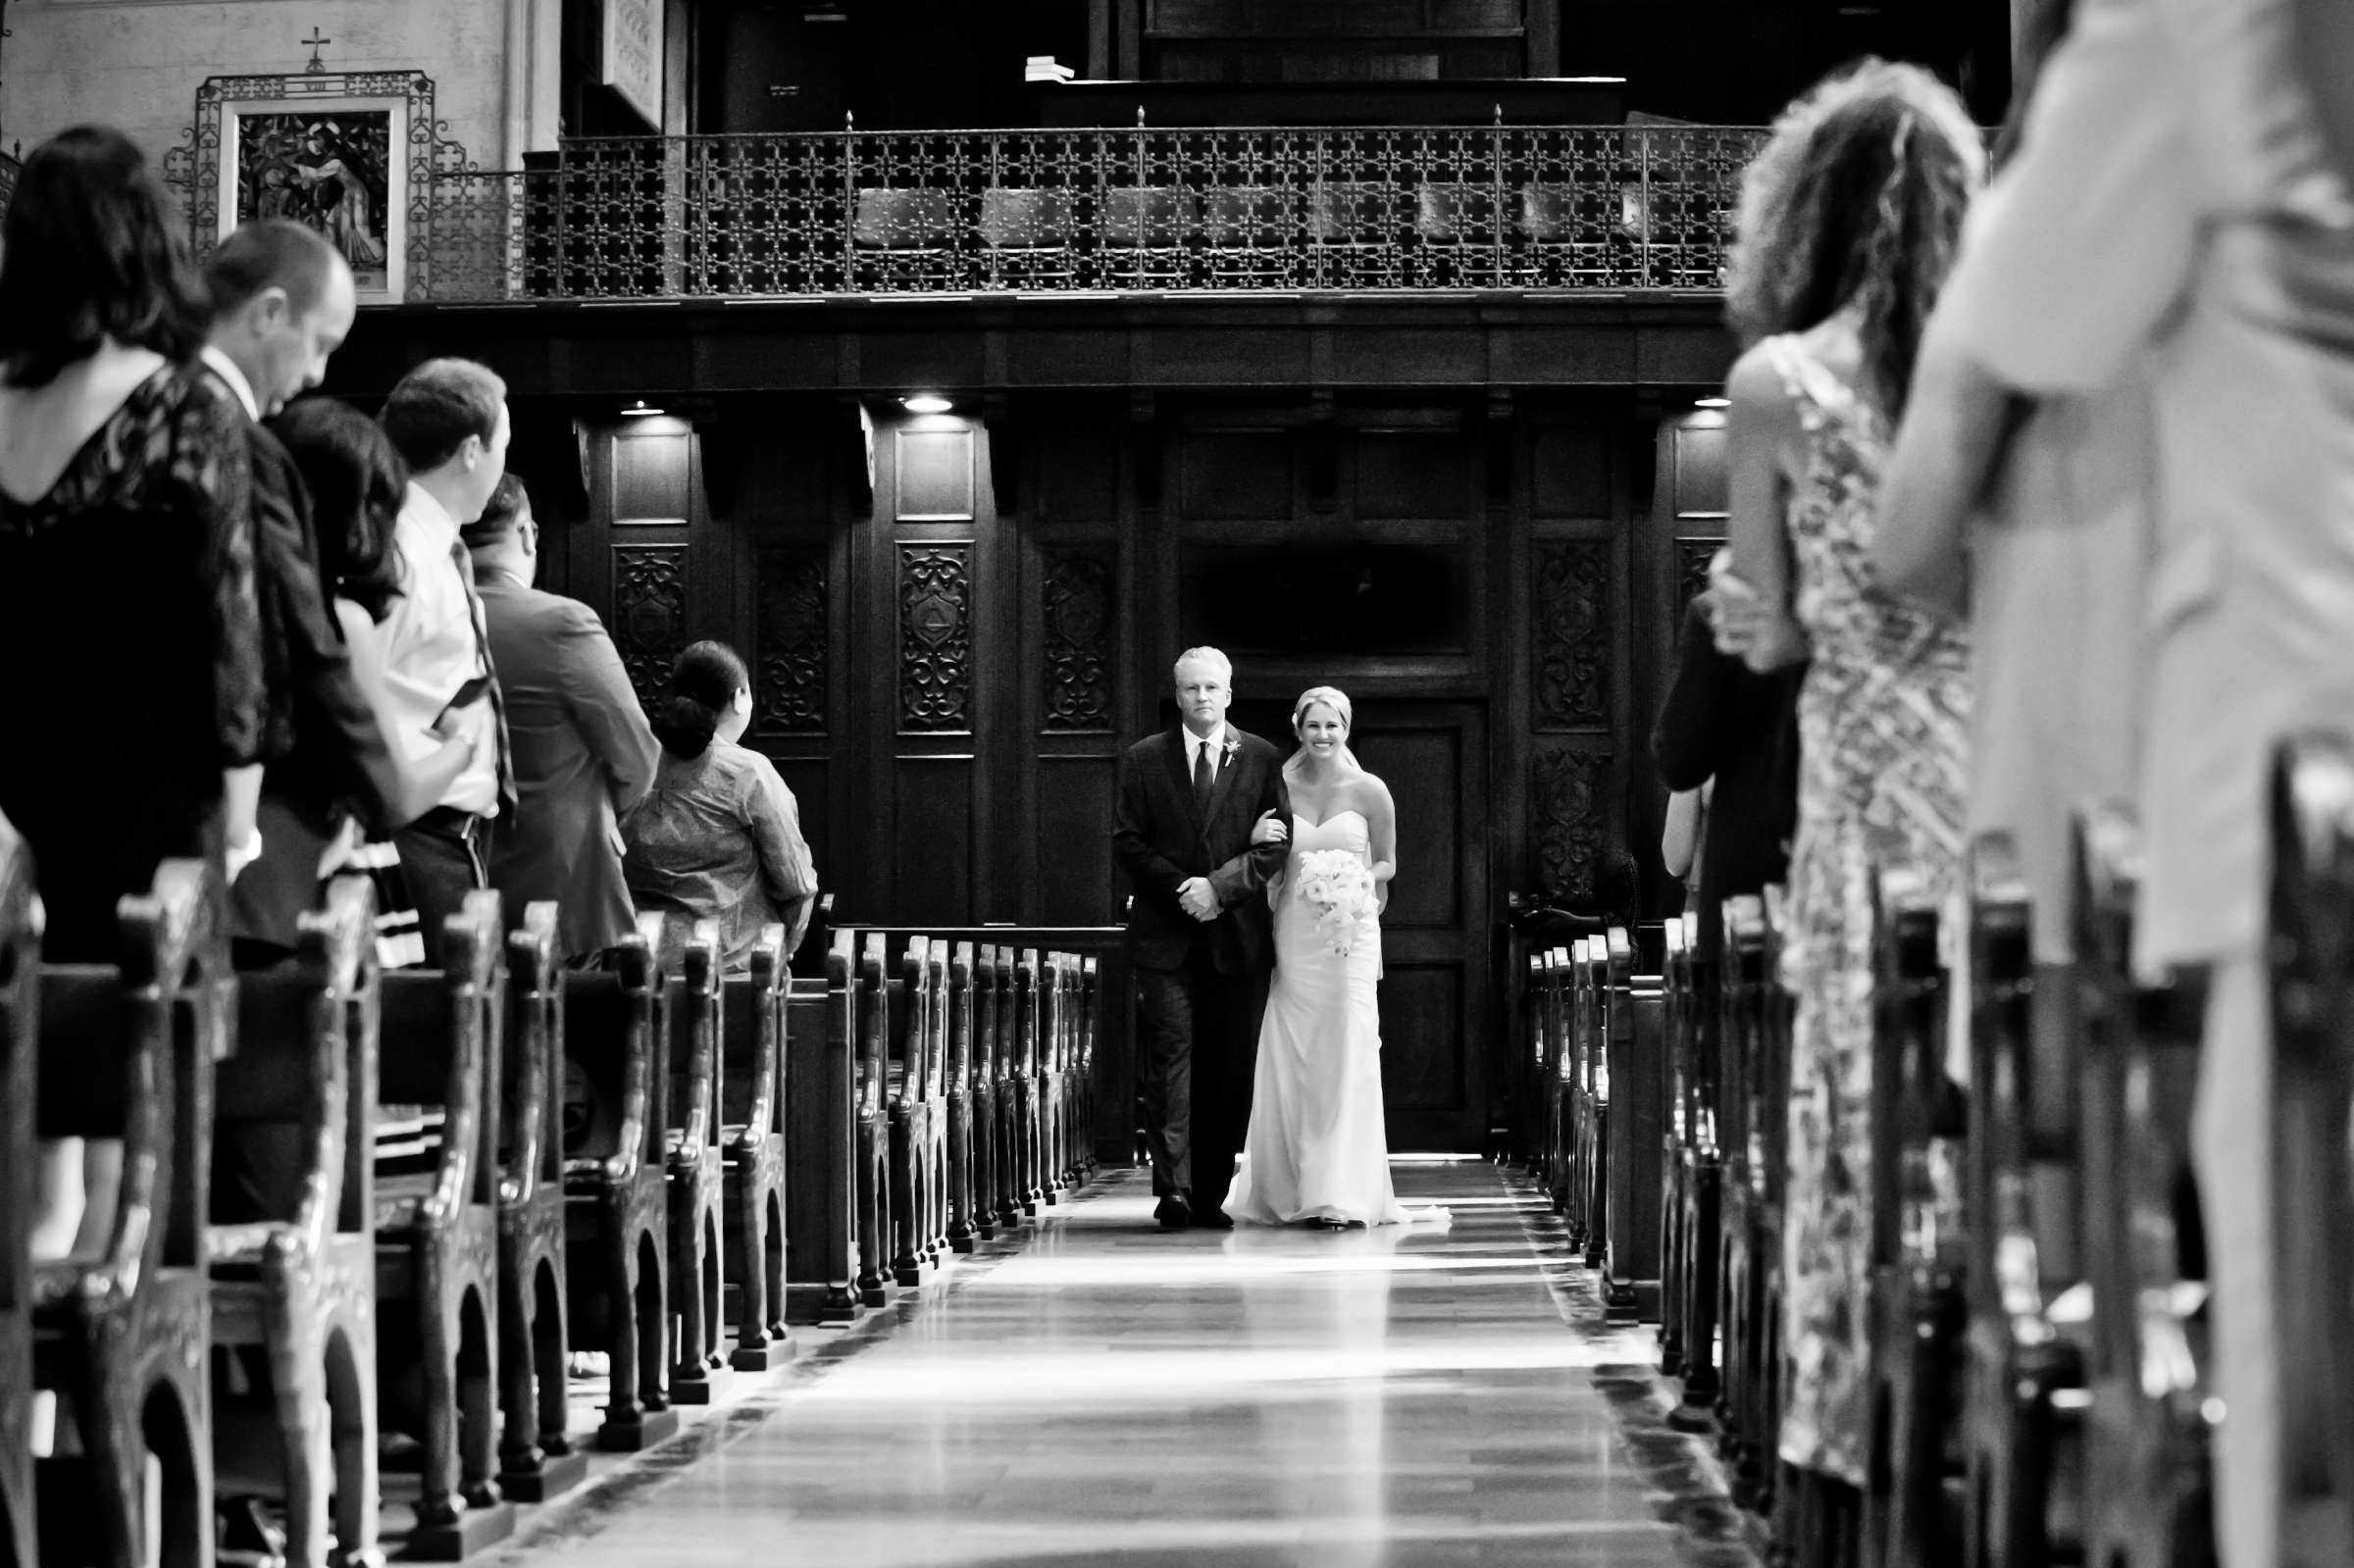 Father of the Bride, Church at Ultimate Skybox Wedding, Chelsea and Frank Wedding Photo #32 by True Photography